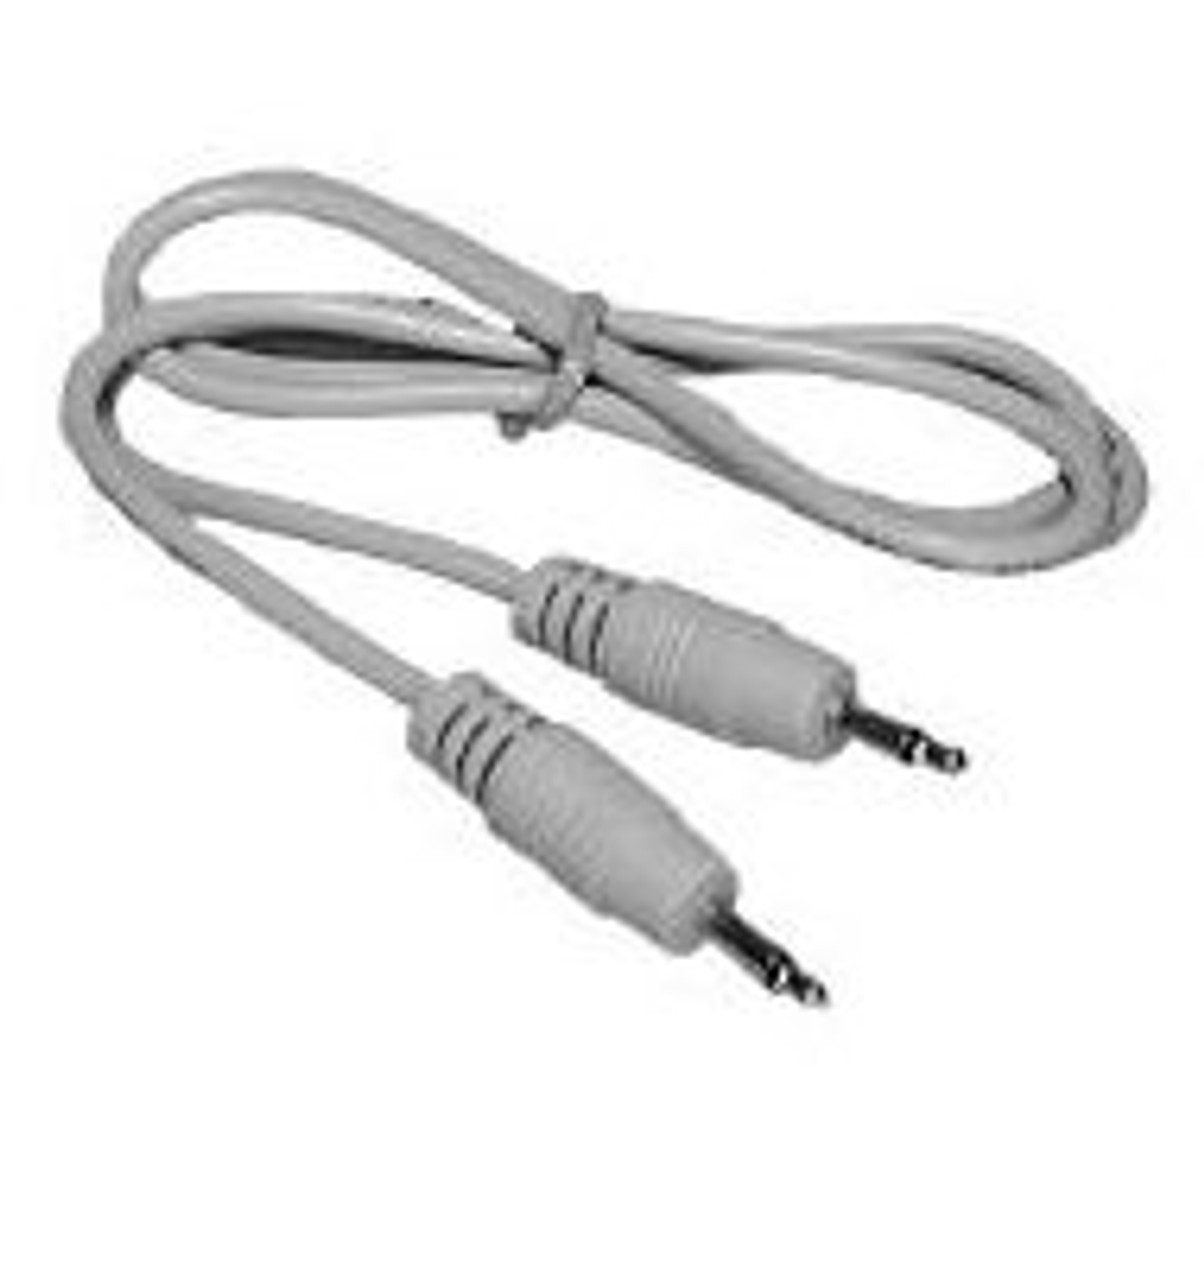 MediaStar 3.5mm Male to Male Mono Cable - 6 Feet